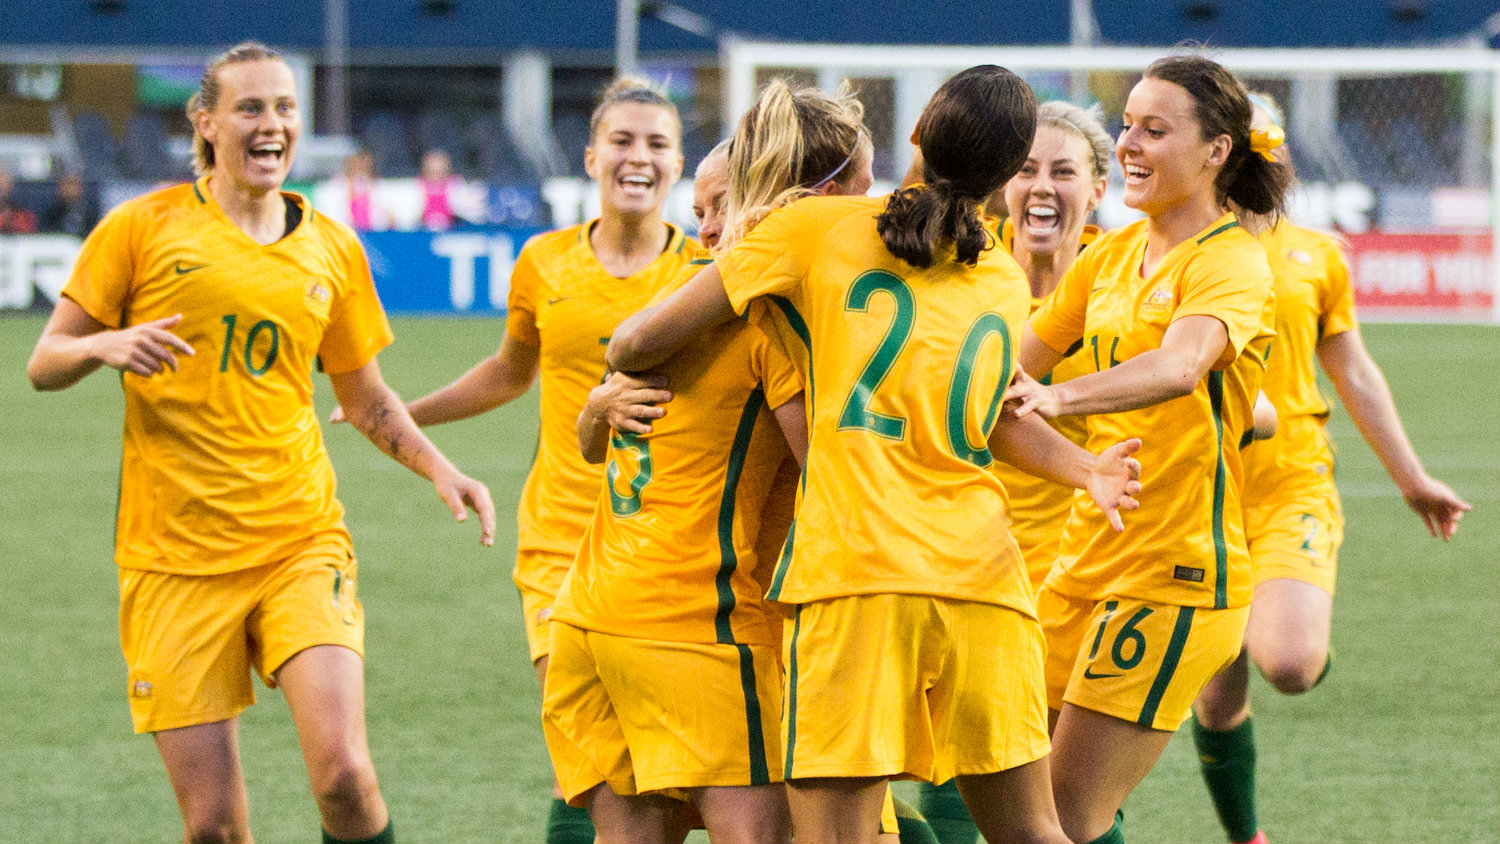 Alen Stajcic has named the Westfield Matildas squad for the home series against Brazil.